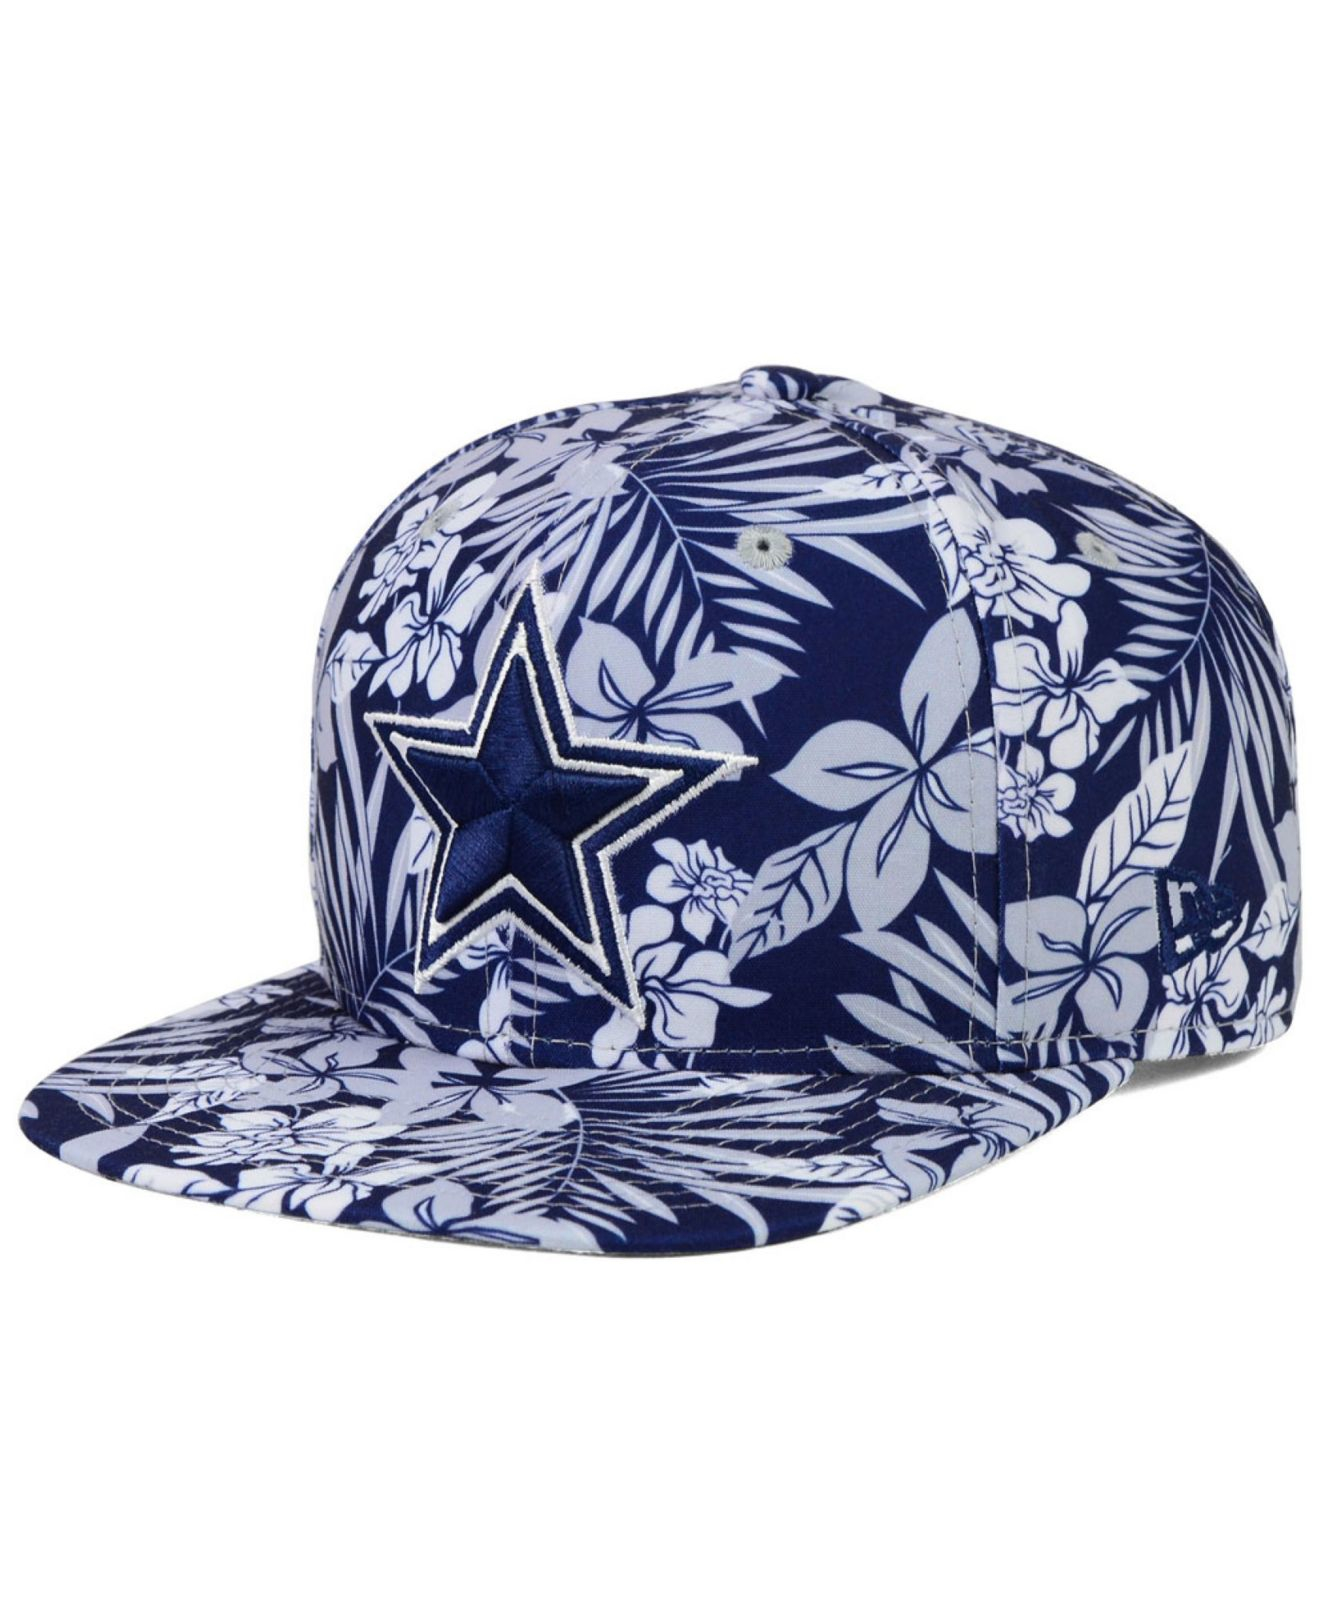 c2ce7effe6de13 wholesale dallas cowboys nfl new era 20652804 white legacy 91 dri fit vapor  cap a508f f28b5; denmark nike dallas cowboys hat hd image ukjugs 3c41a 7b180